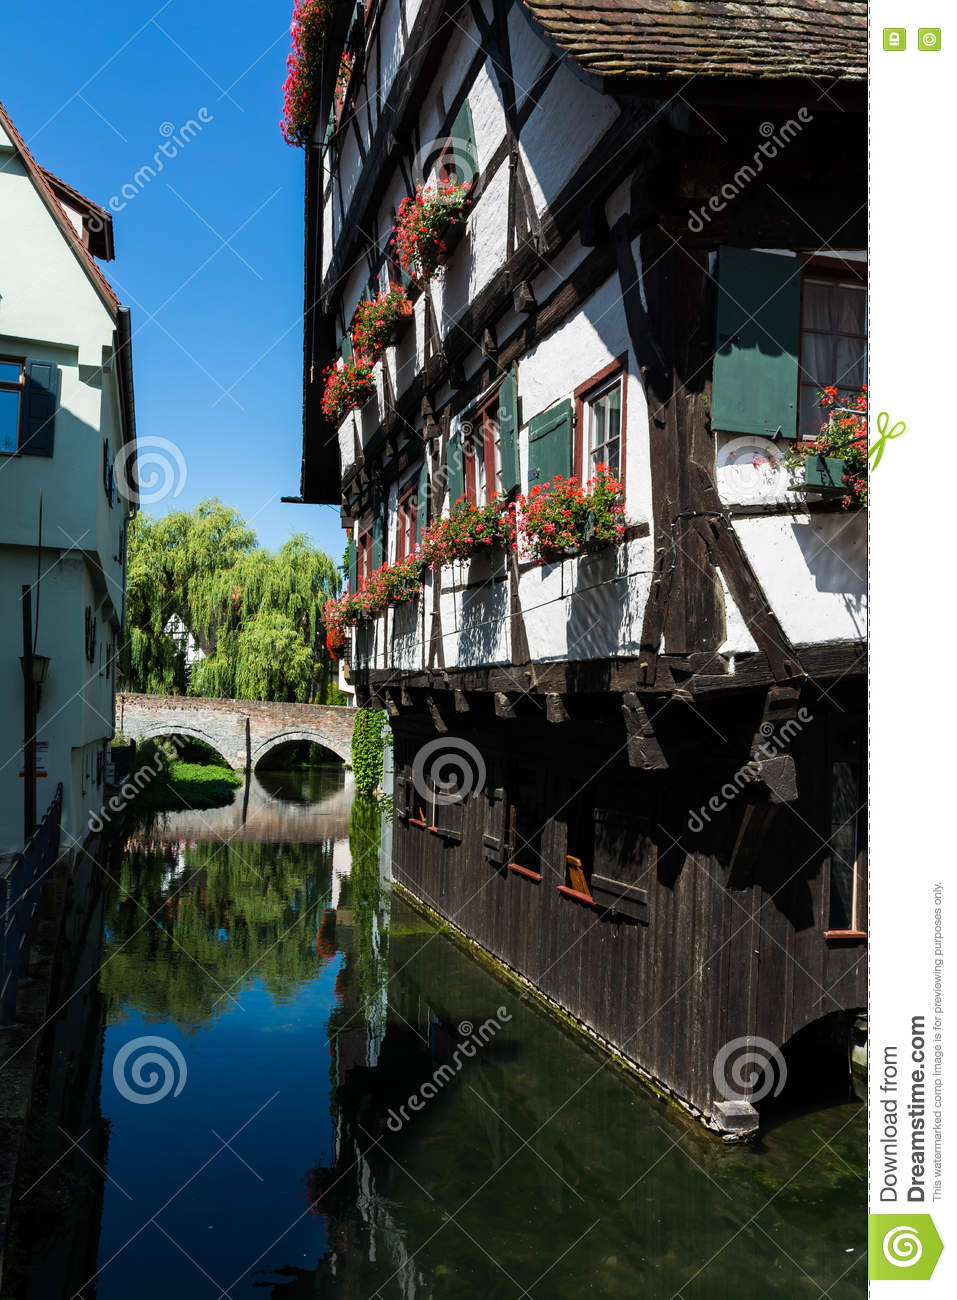 Cottage Haus Hotel Schiefes Haus Ulm Landmark Germany Cottage House Water Stock